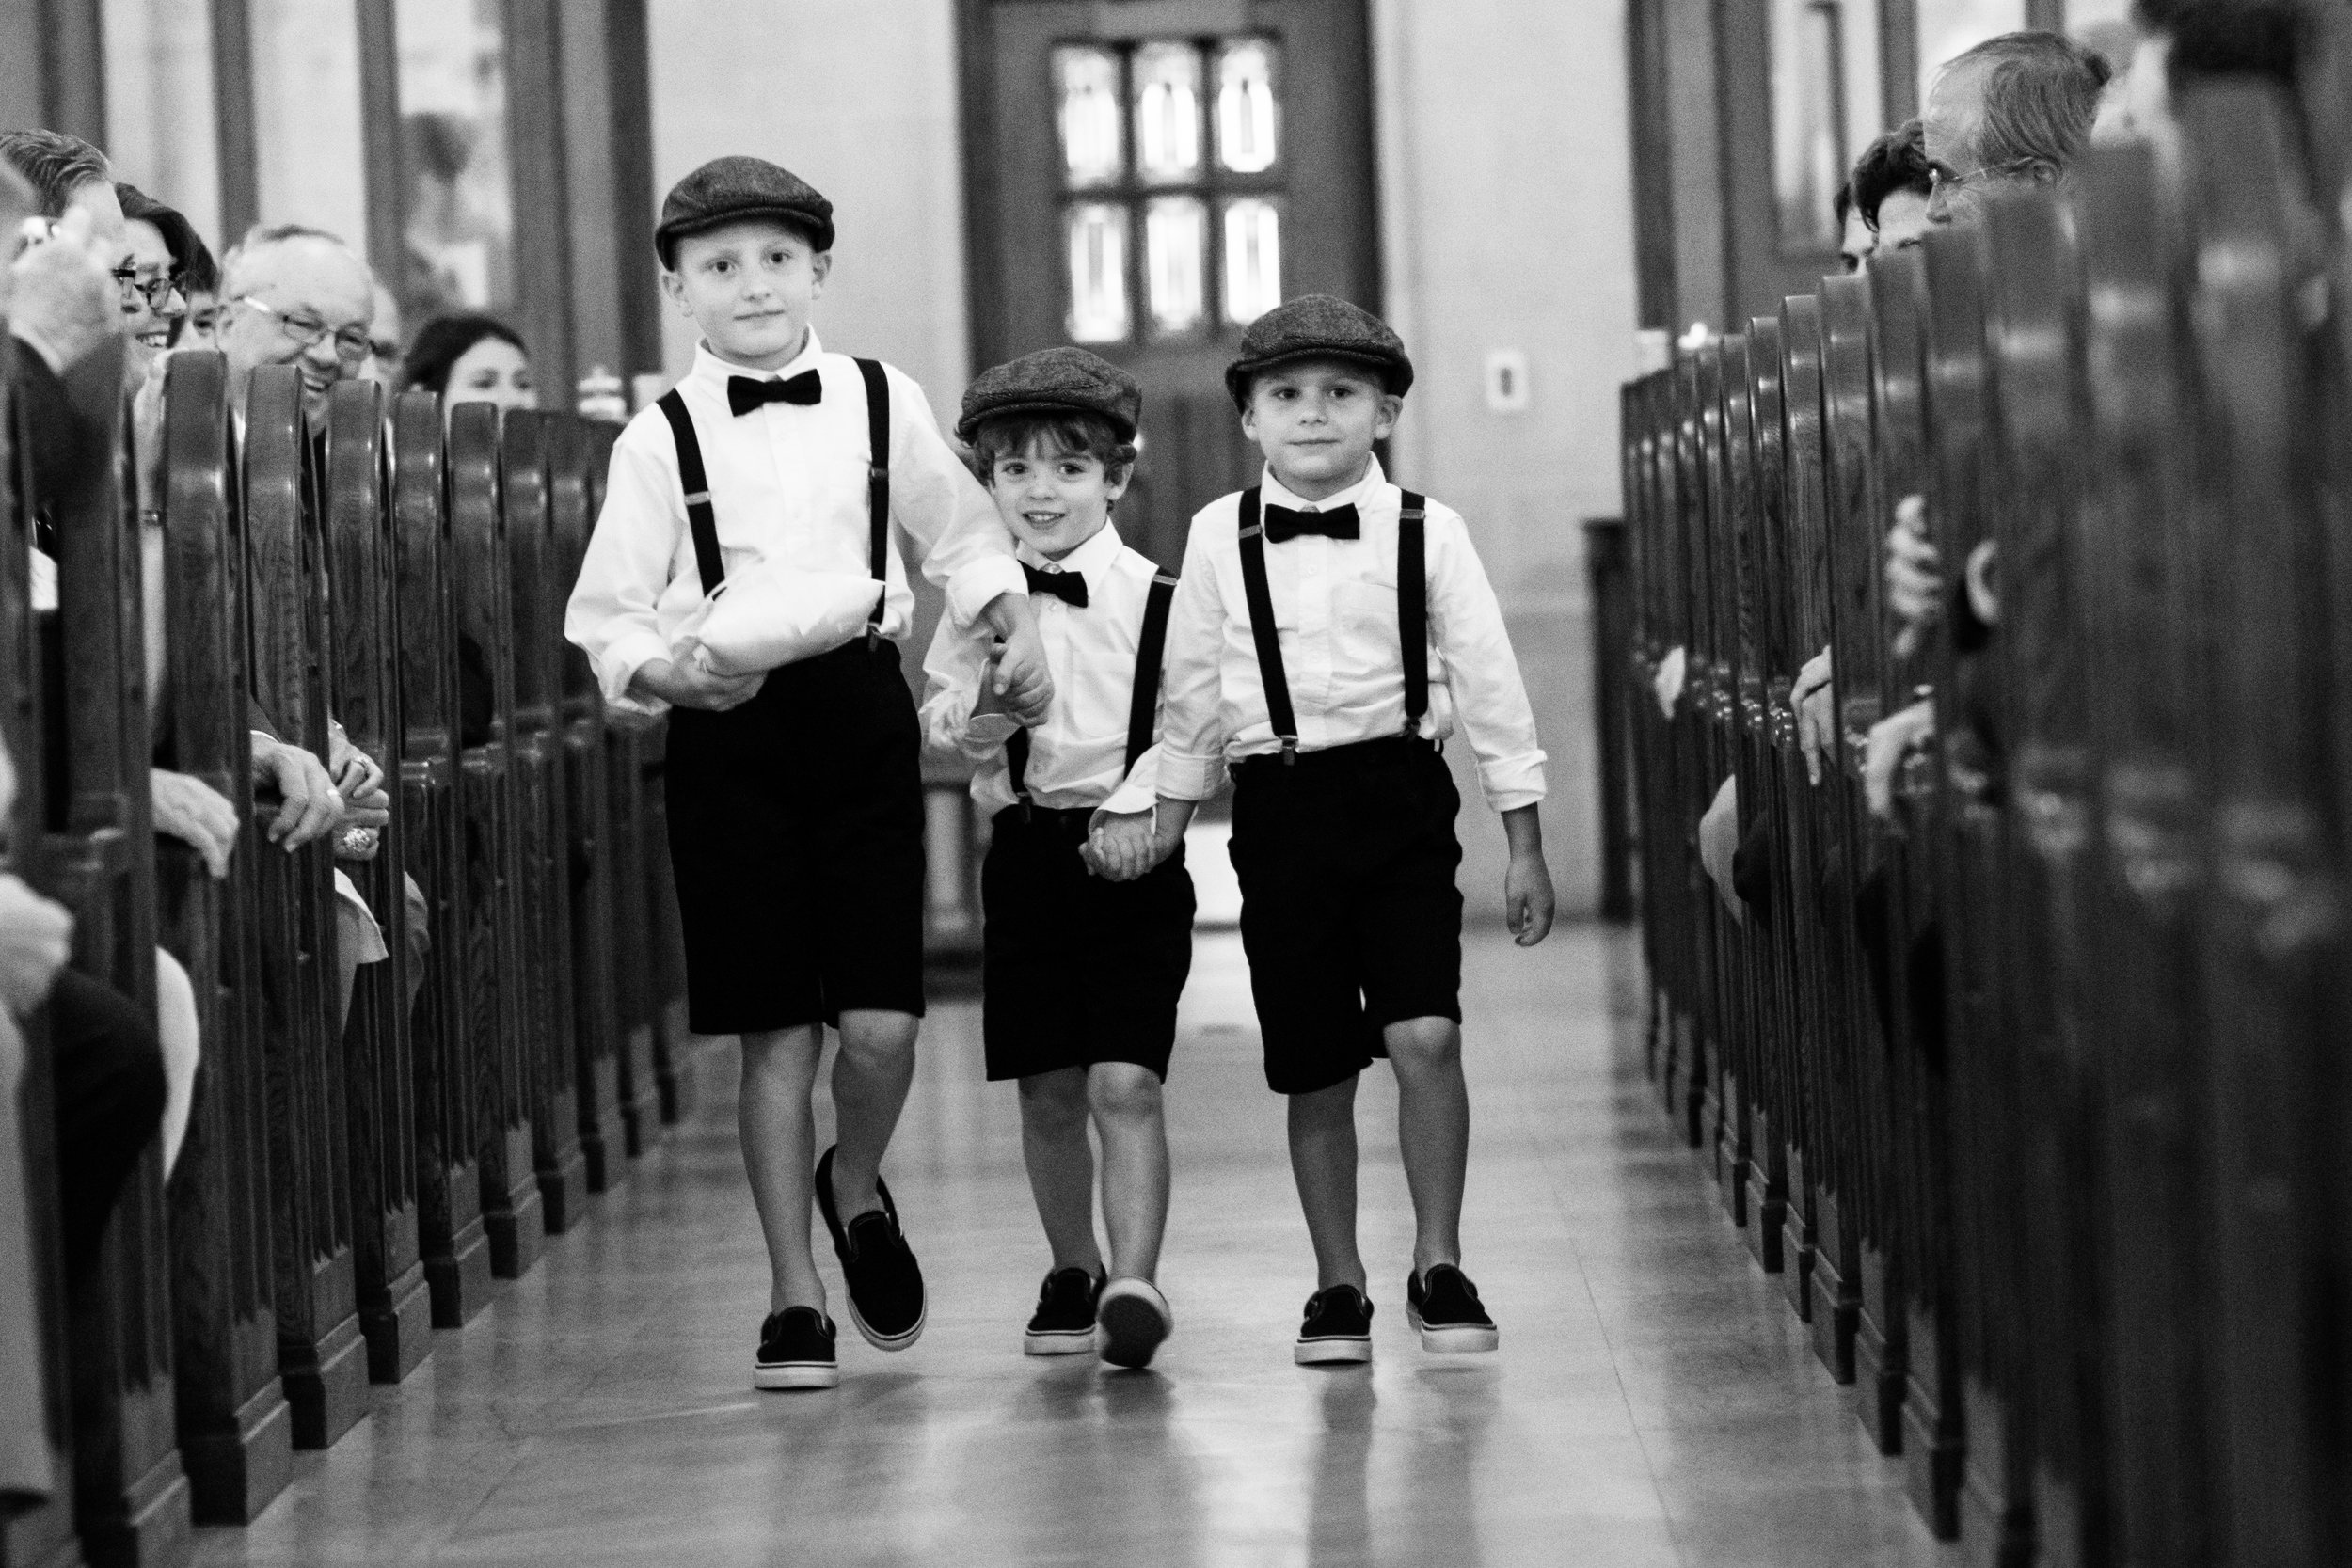 Ring bearers at wedding ceremony